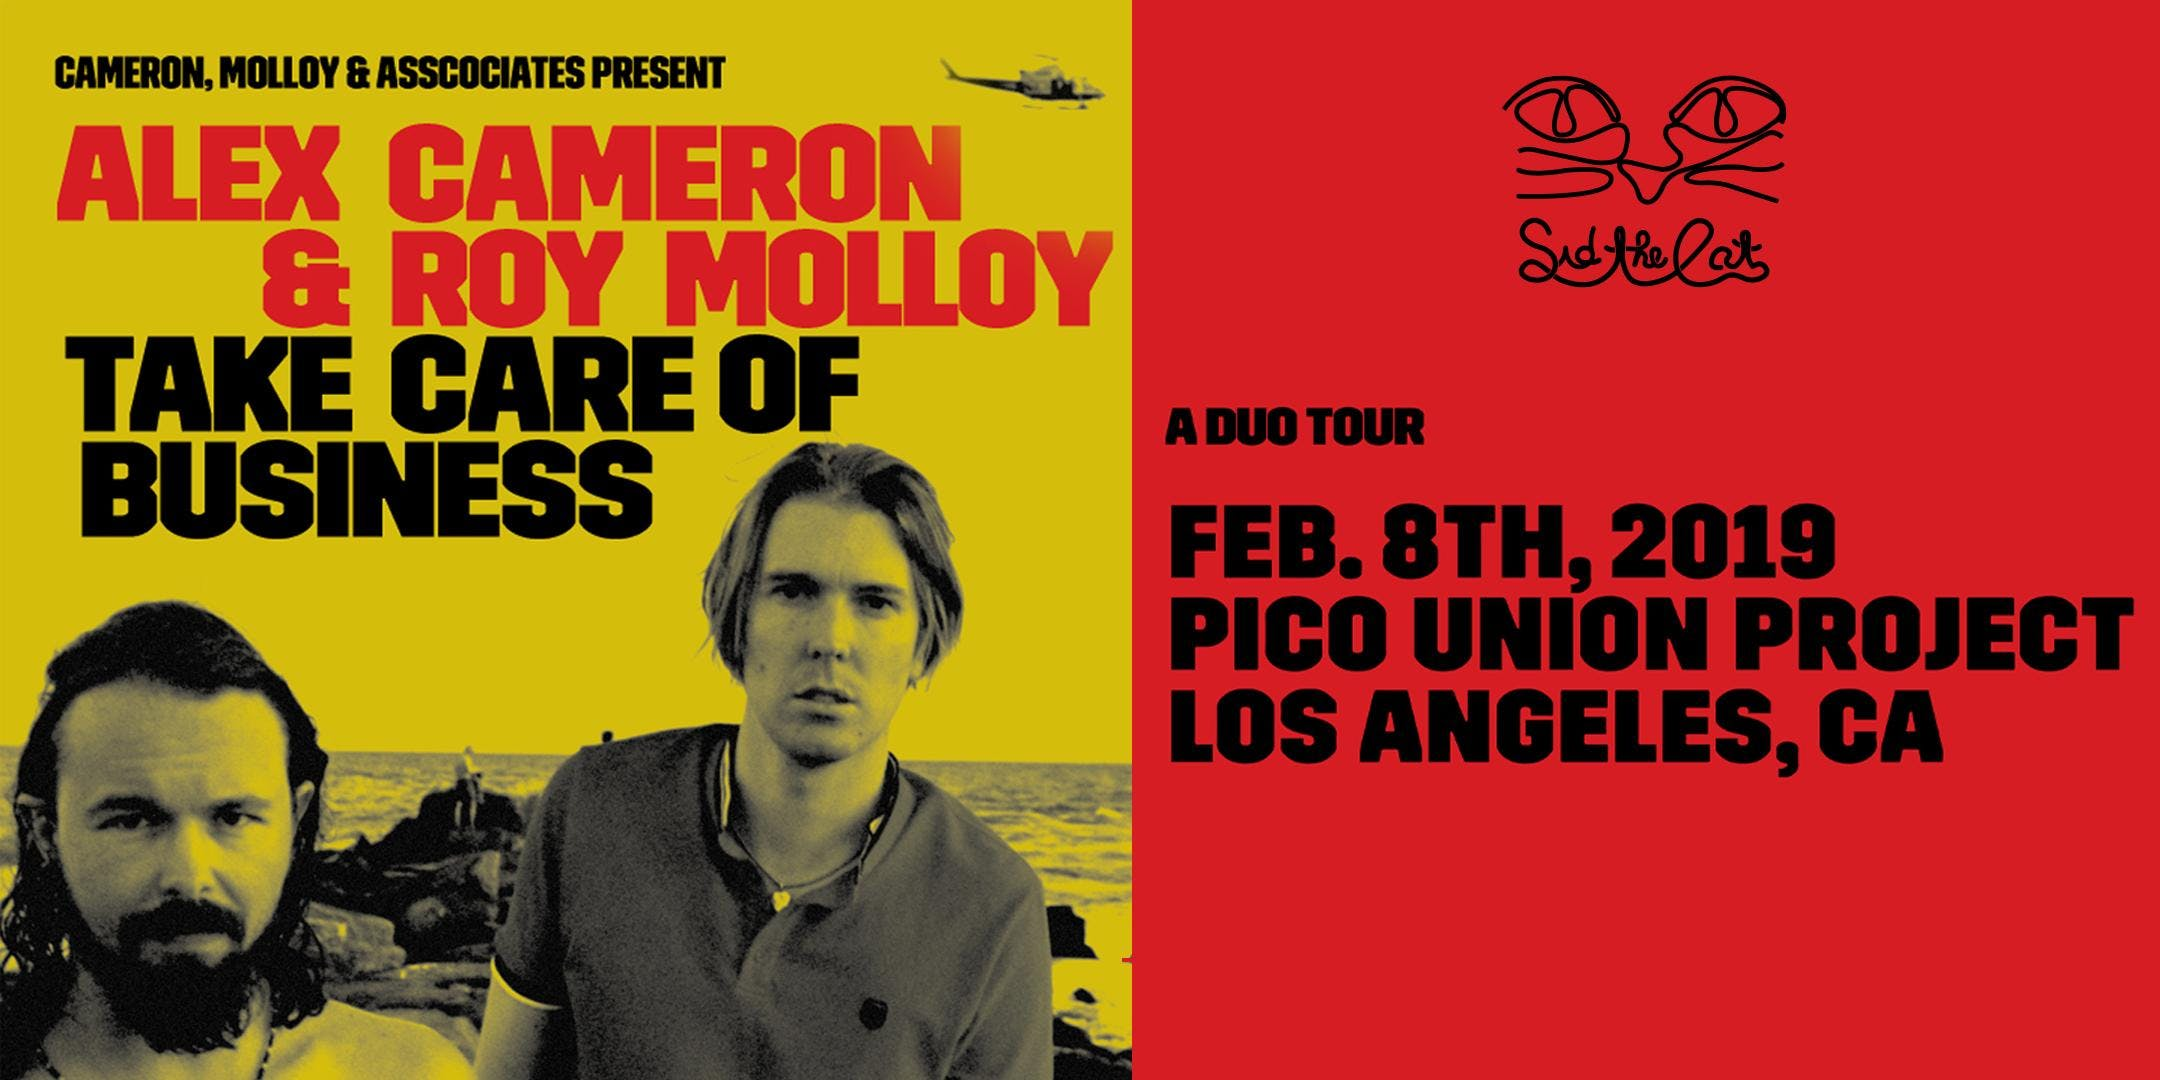 ALEX CAMERON & ROY MOLLOY: TAKE CARE OF BUSINESS A duo tour